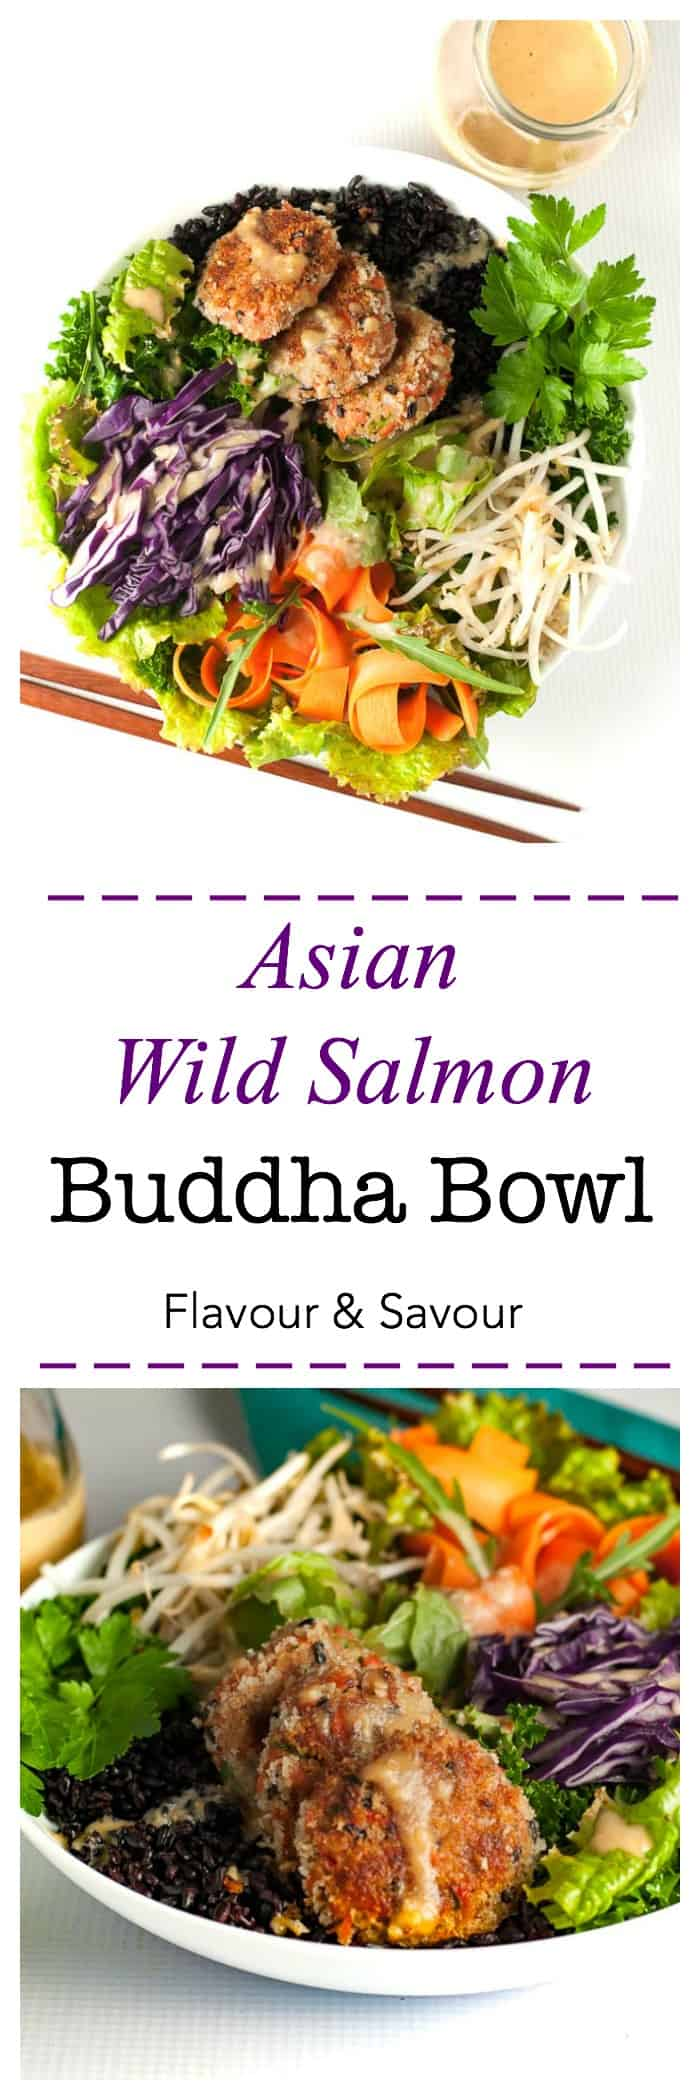 A superfood protein-packed meal in a bowl, made with #RaincoastTradingCo wild sockeye salmon, Forbidden Rice, kale, red cabbage, carrots, bean sprouts and drizzled with peanut sauce. #ad #power_bowl #buddha_bowl #salmon #patties #peanut_sauce